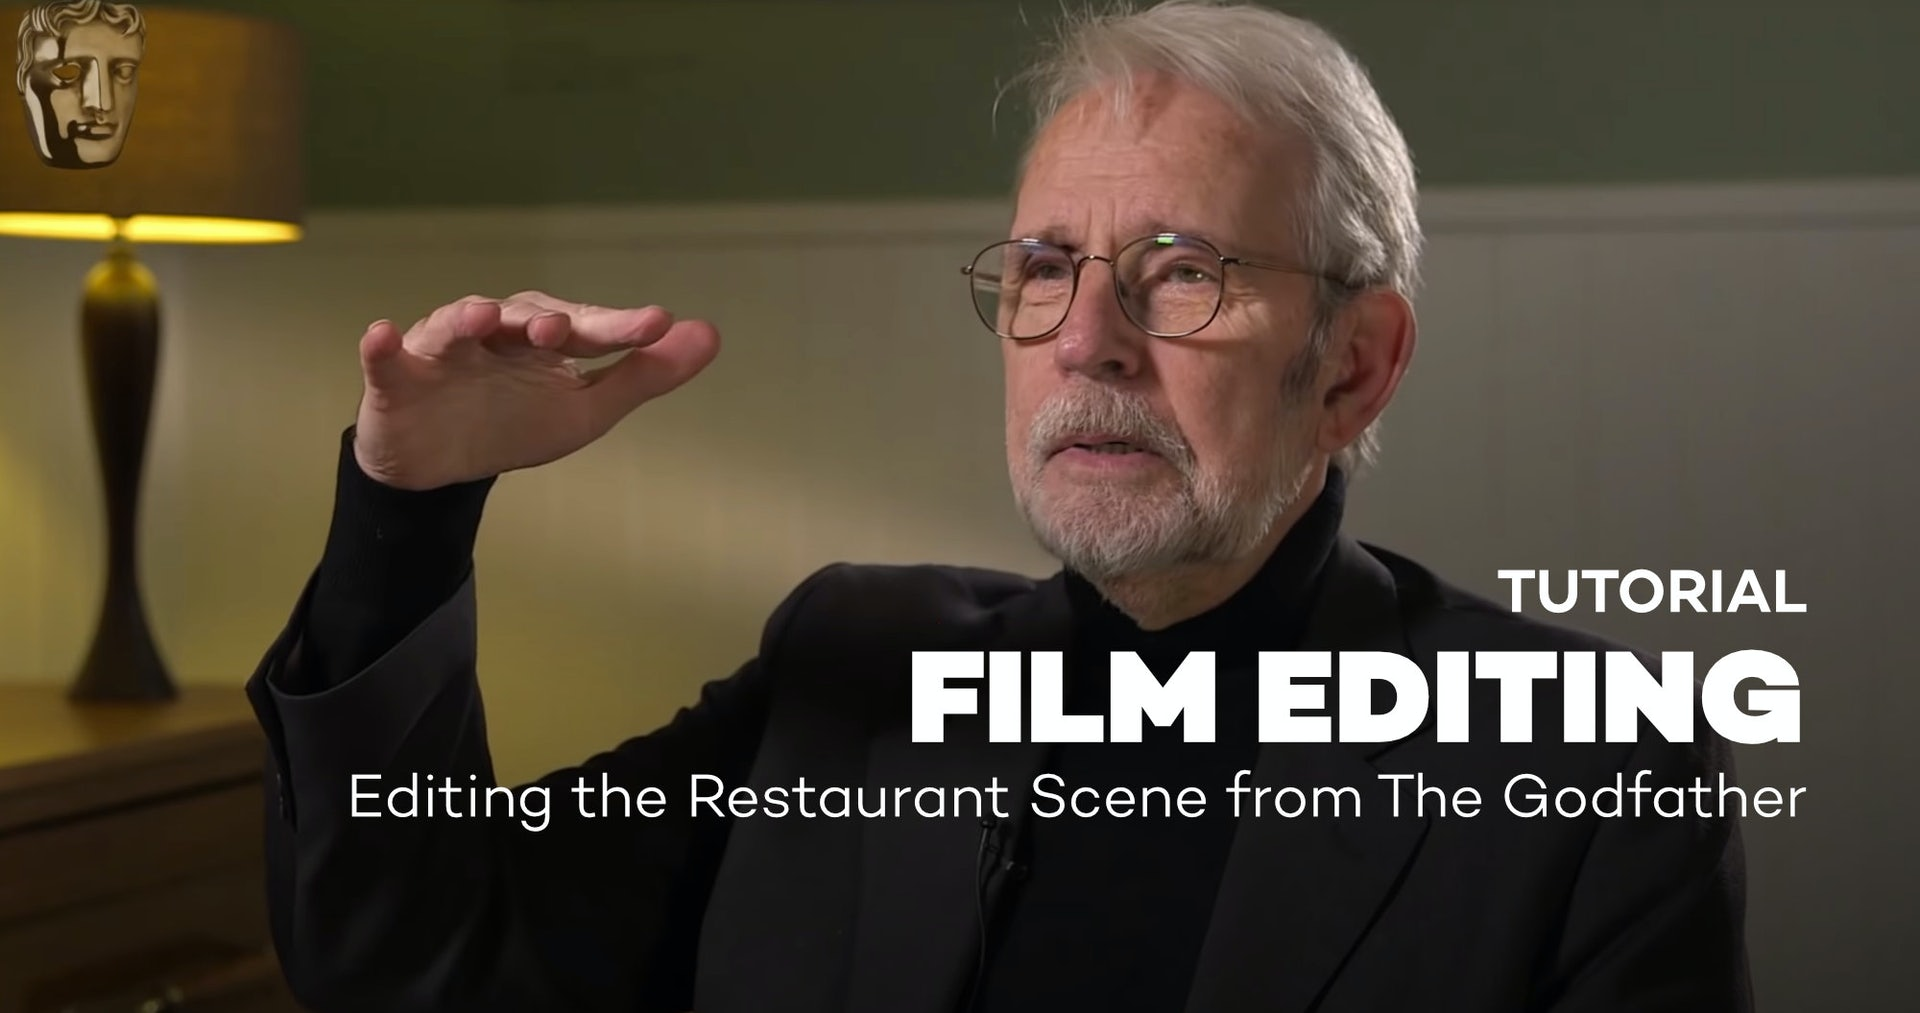 Walter Murch on Editing the Restaurant Scene from The Godfather